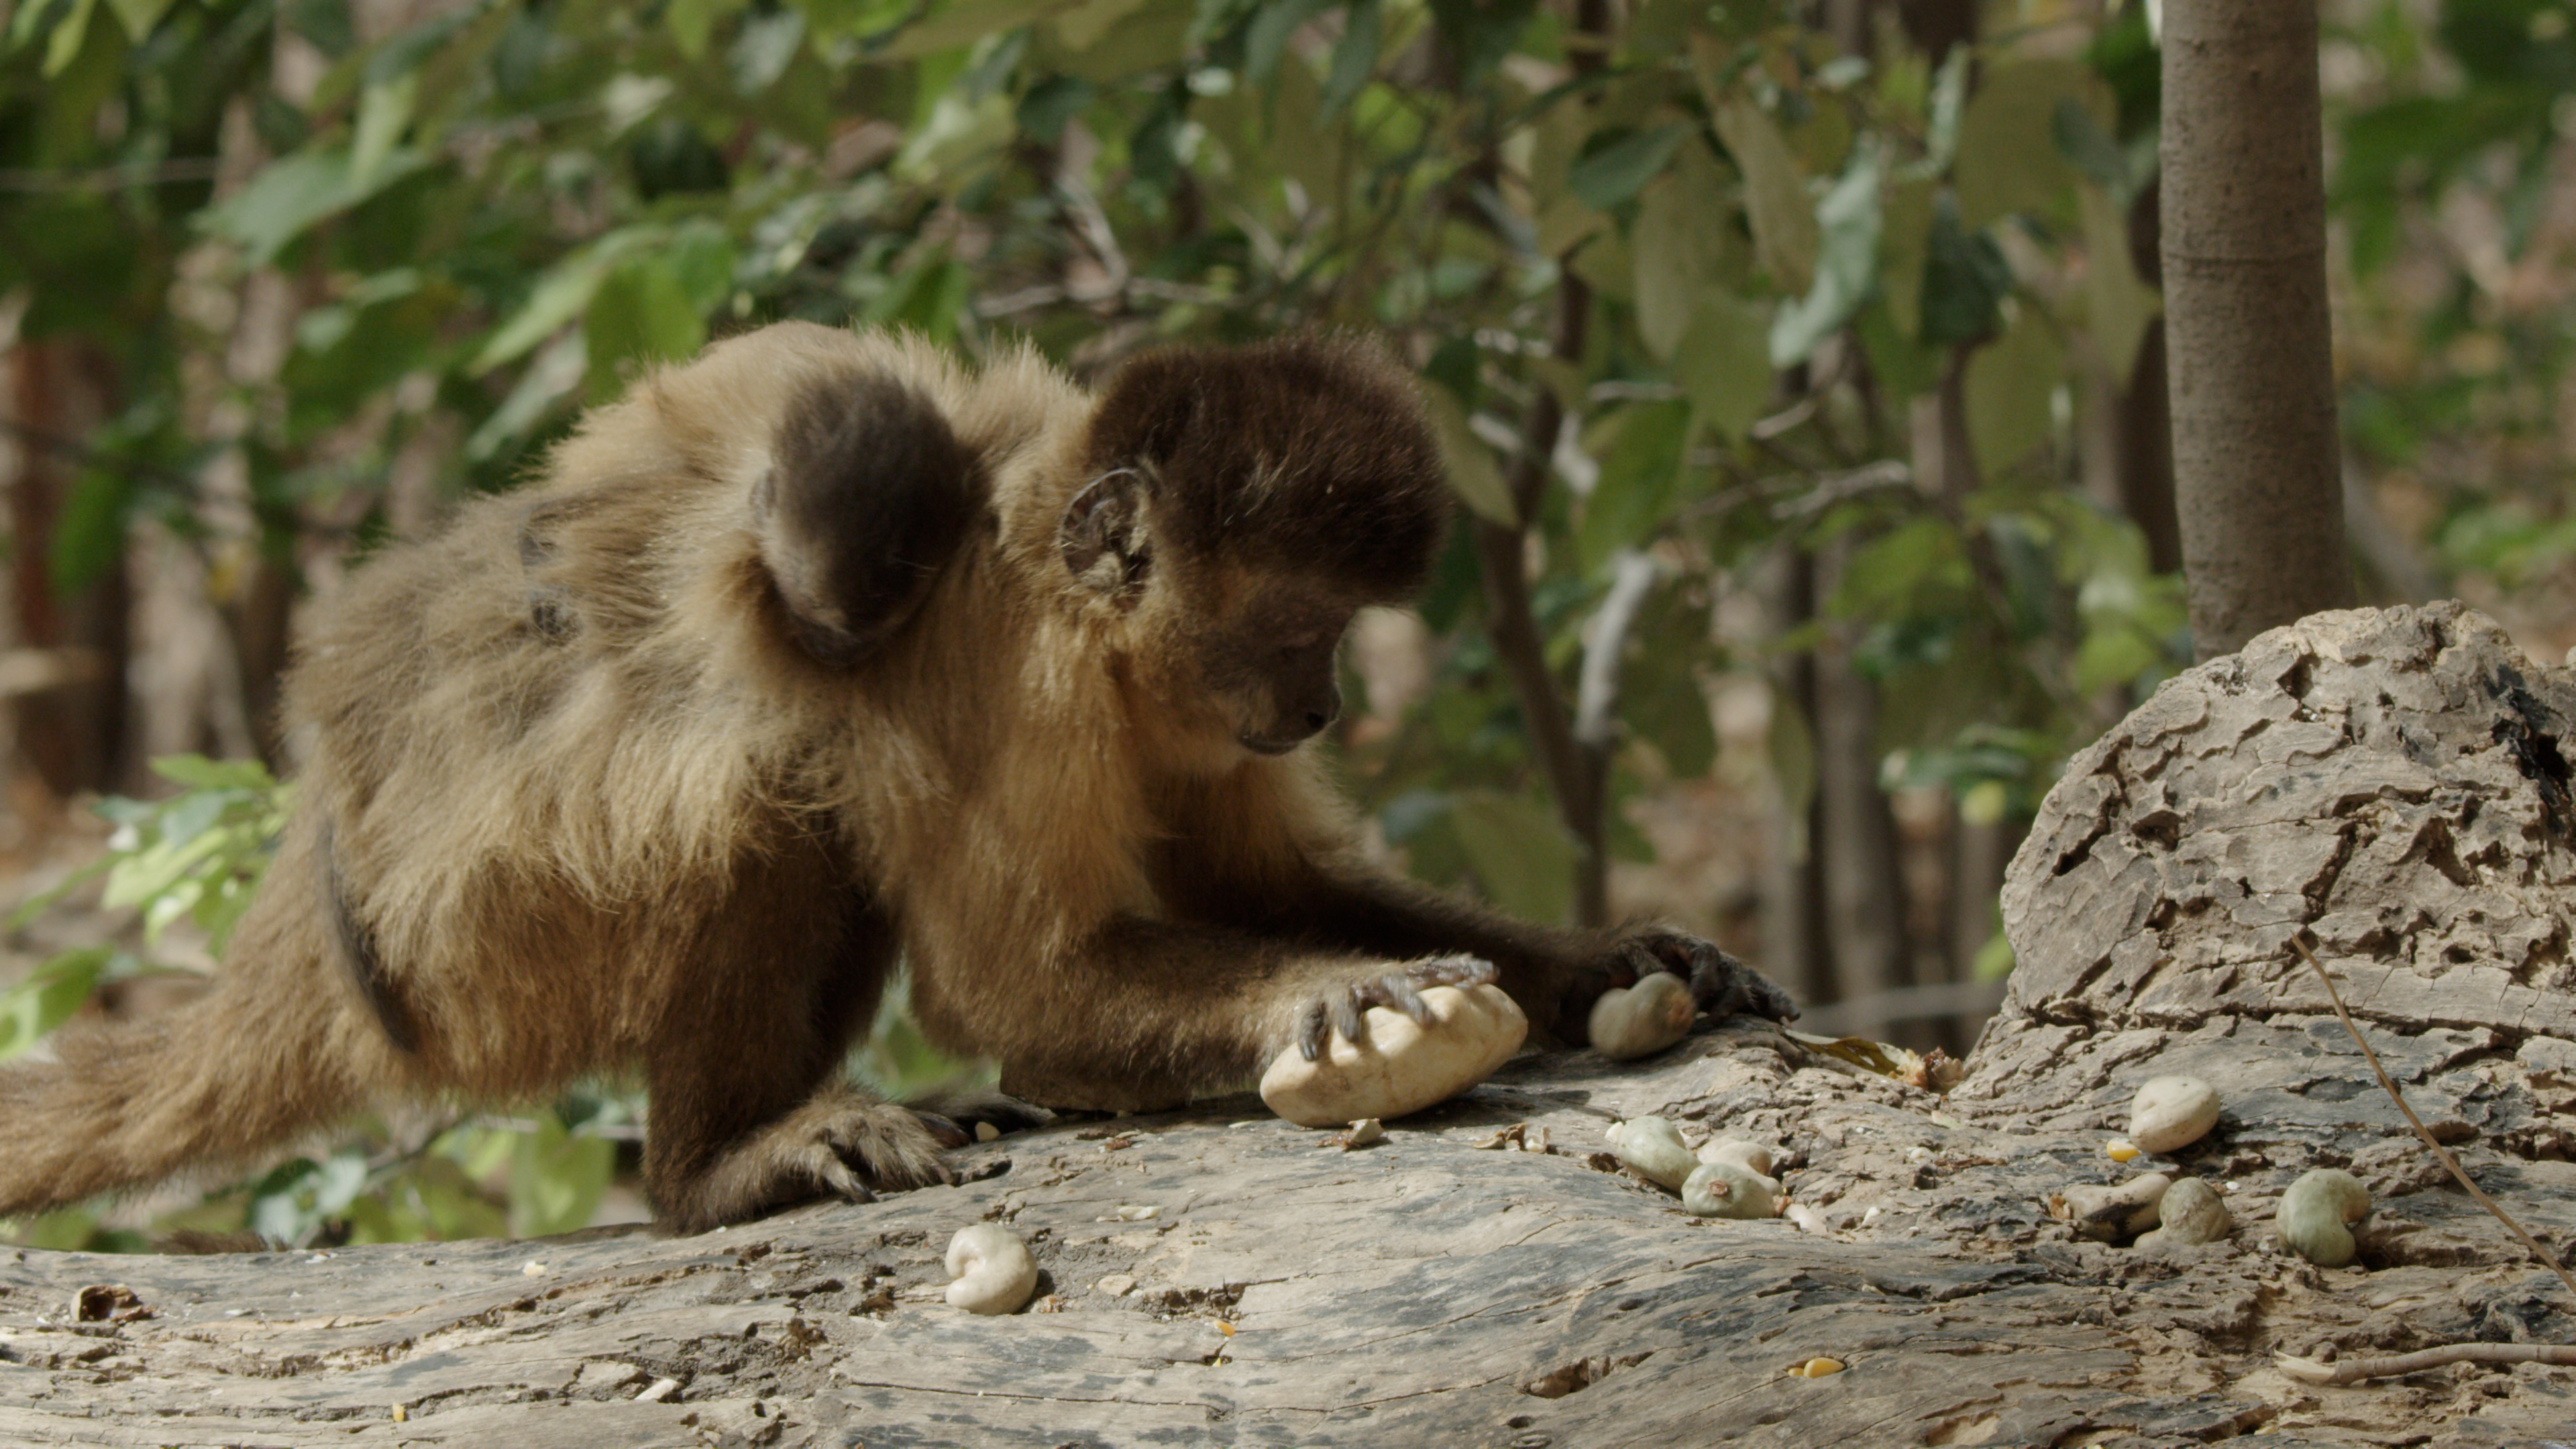 An adult monkey with a baby monkey on its back stands on a fallen tree bends over holding a nut and a rock.